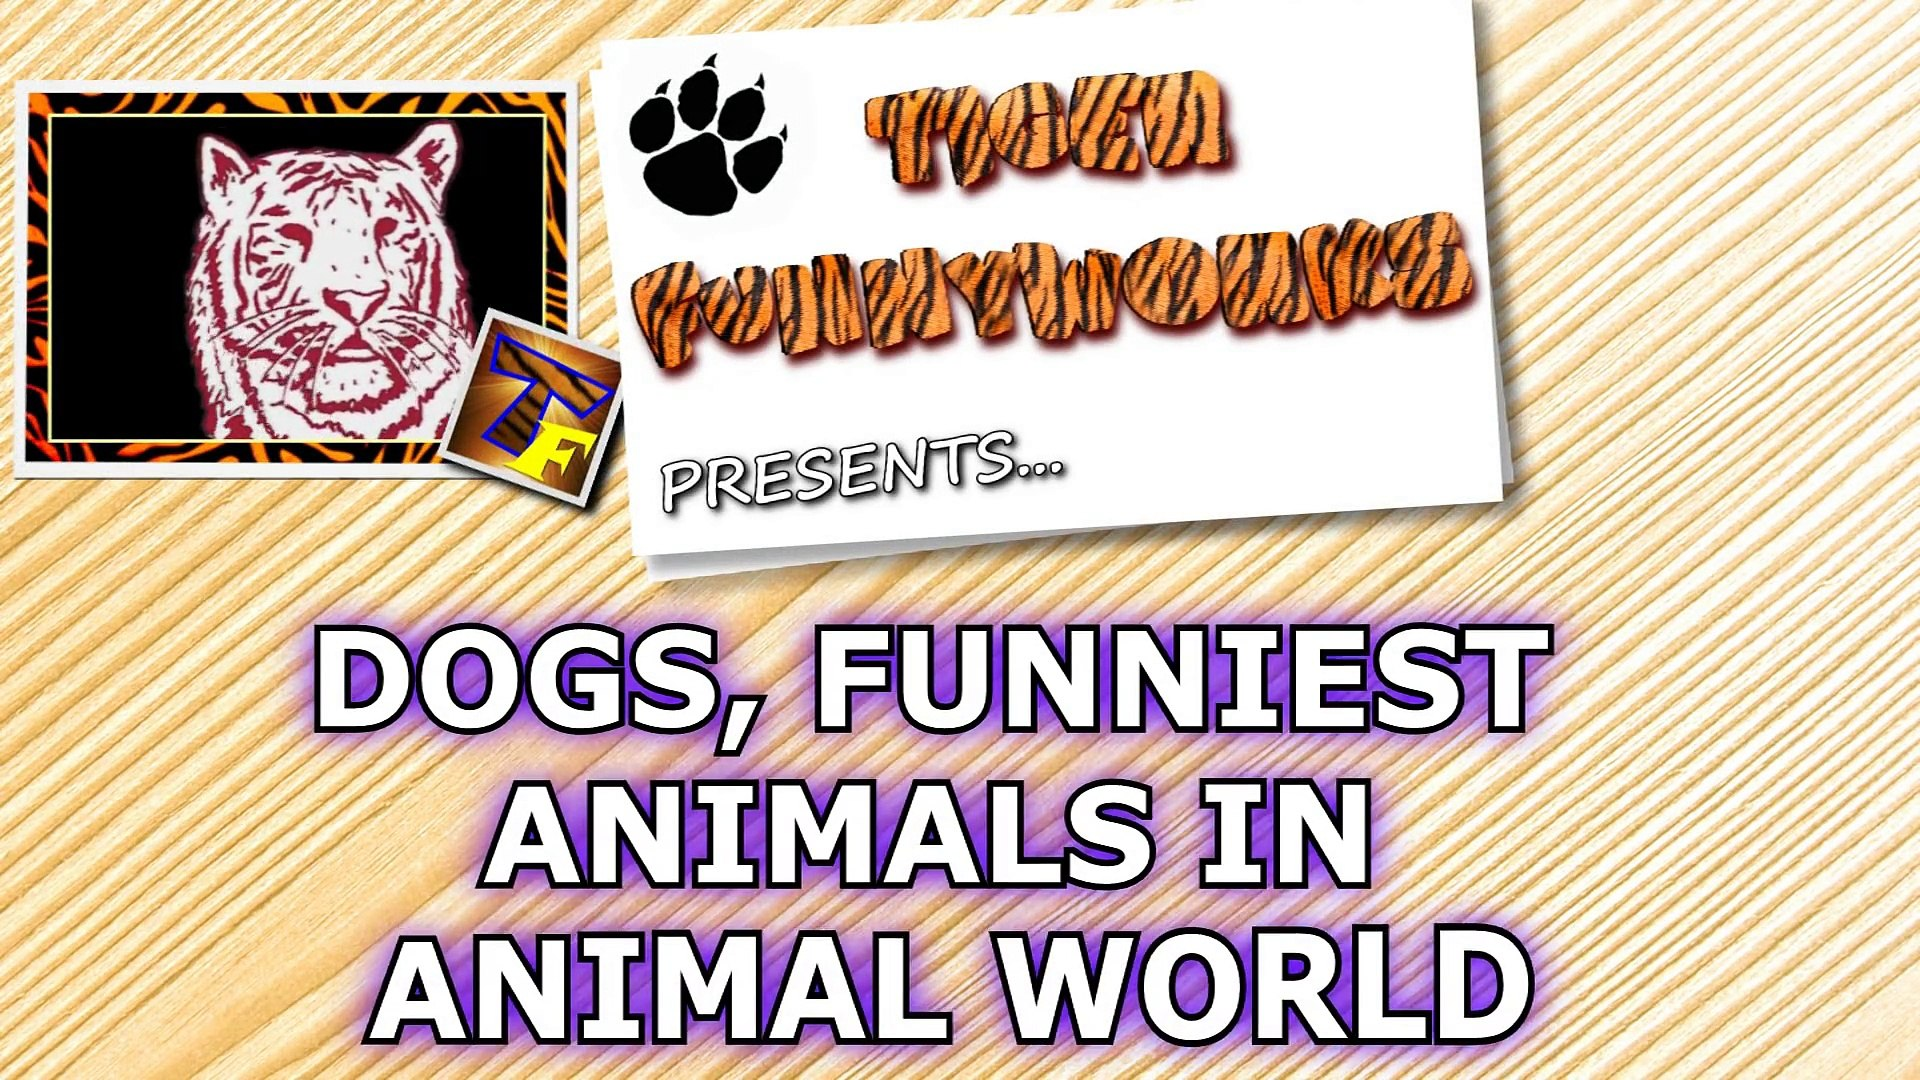 Dogs, the funniest animals in animal world - Funny dogs compilation